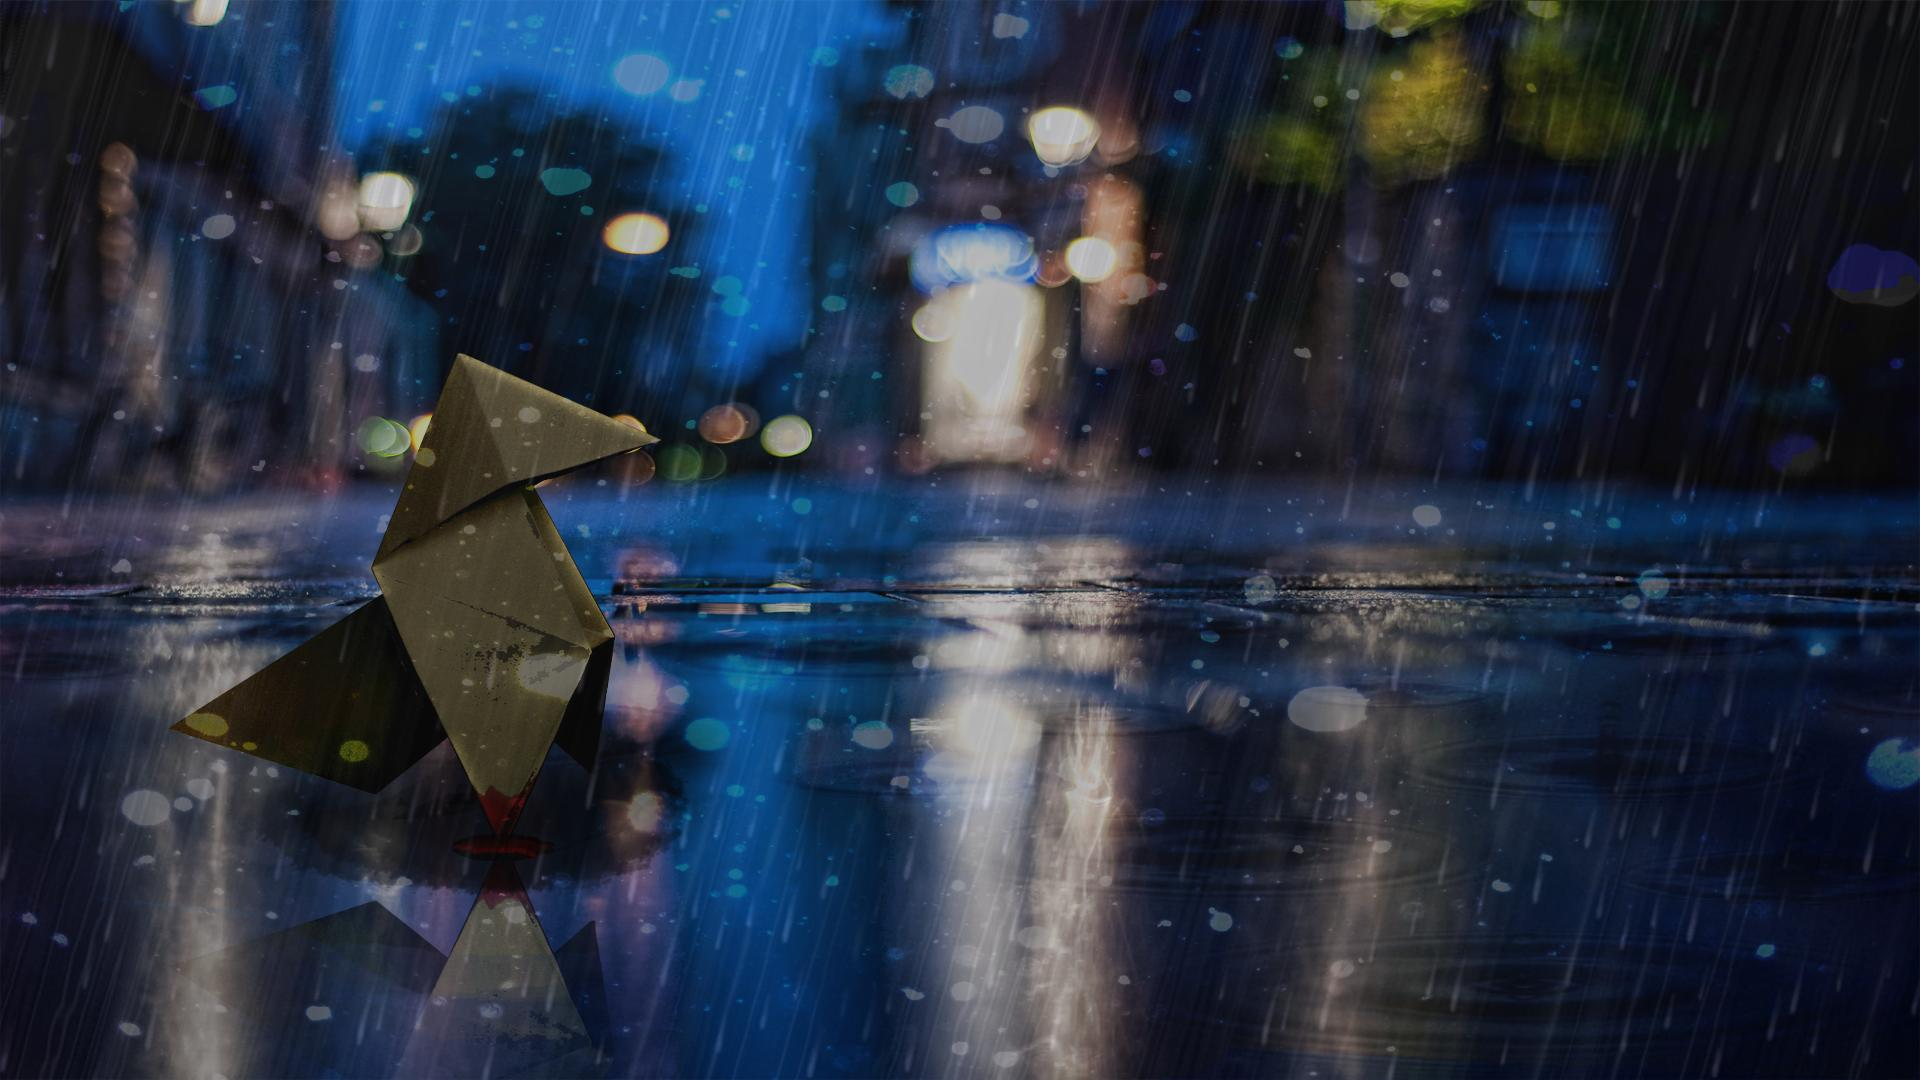 Heavy rain wallpapers wallpaper cave rain wallpapers and backgrounds voltagebd Image collections